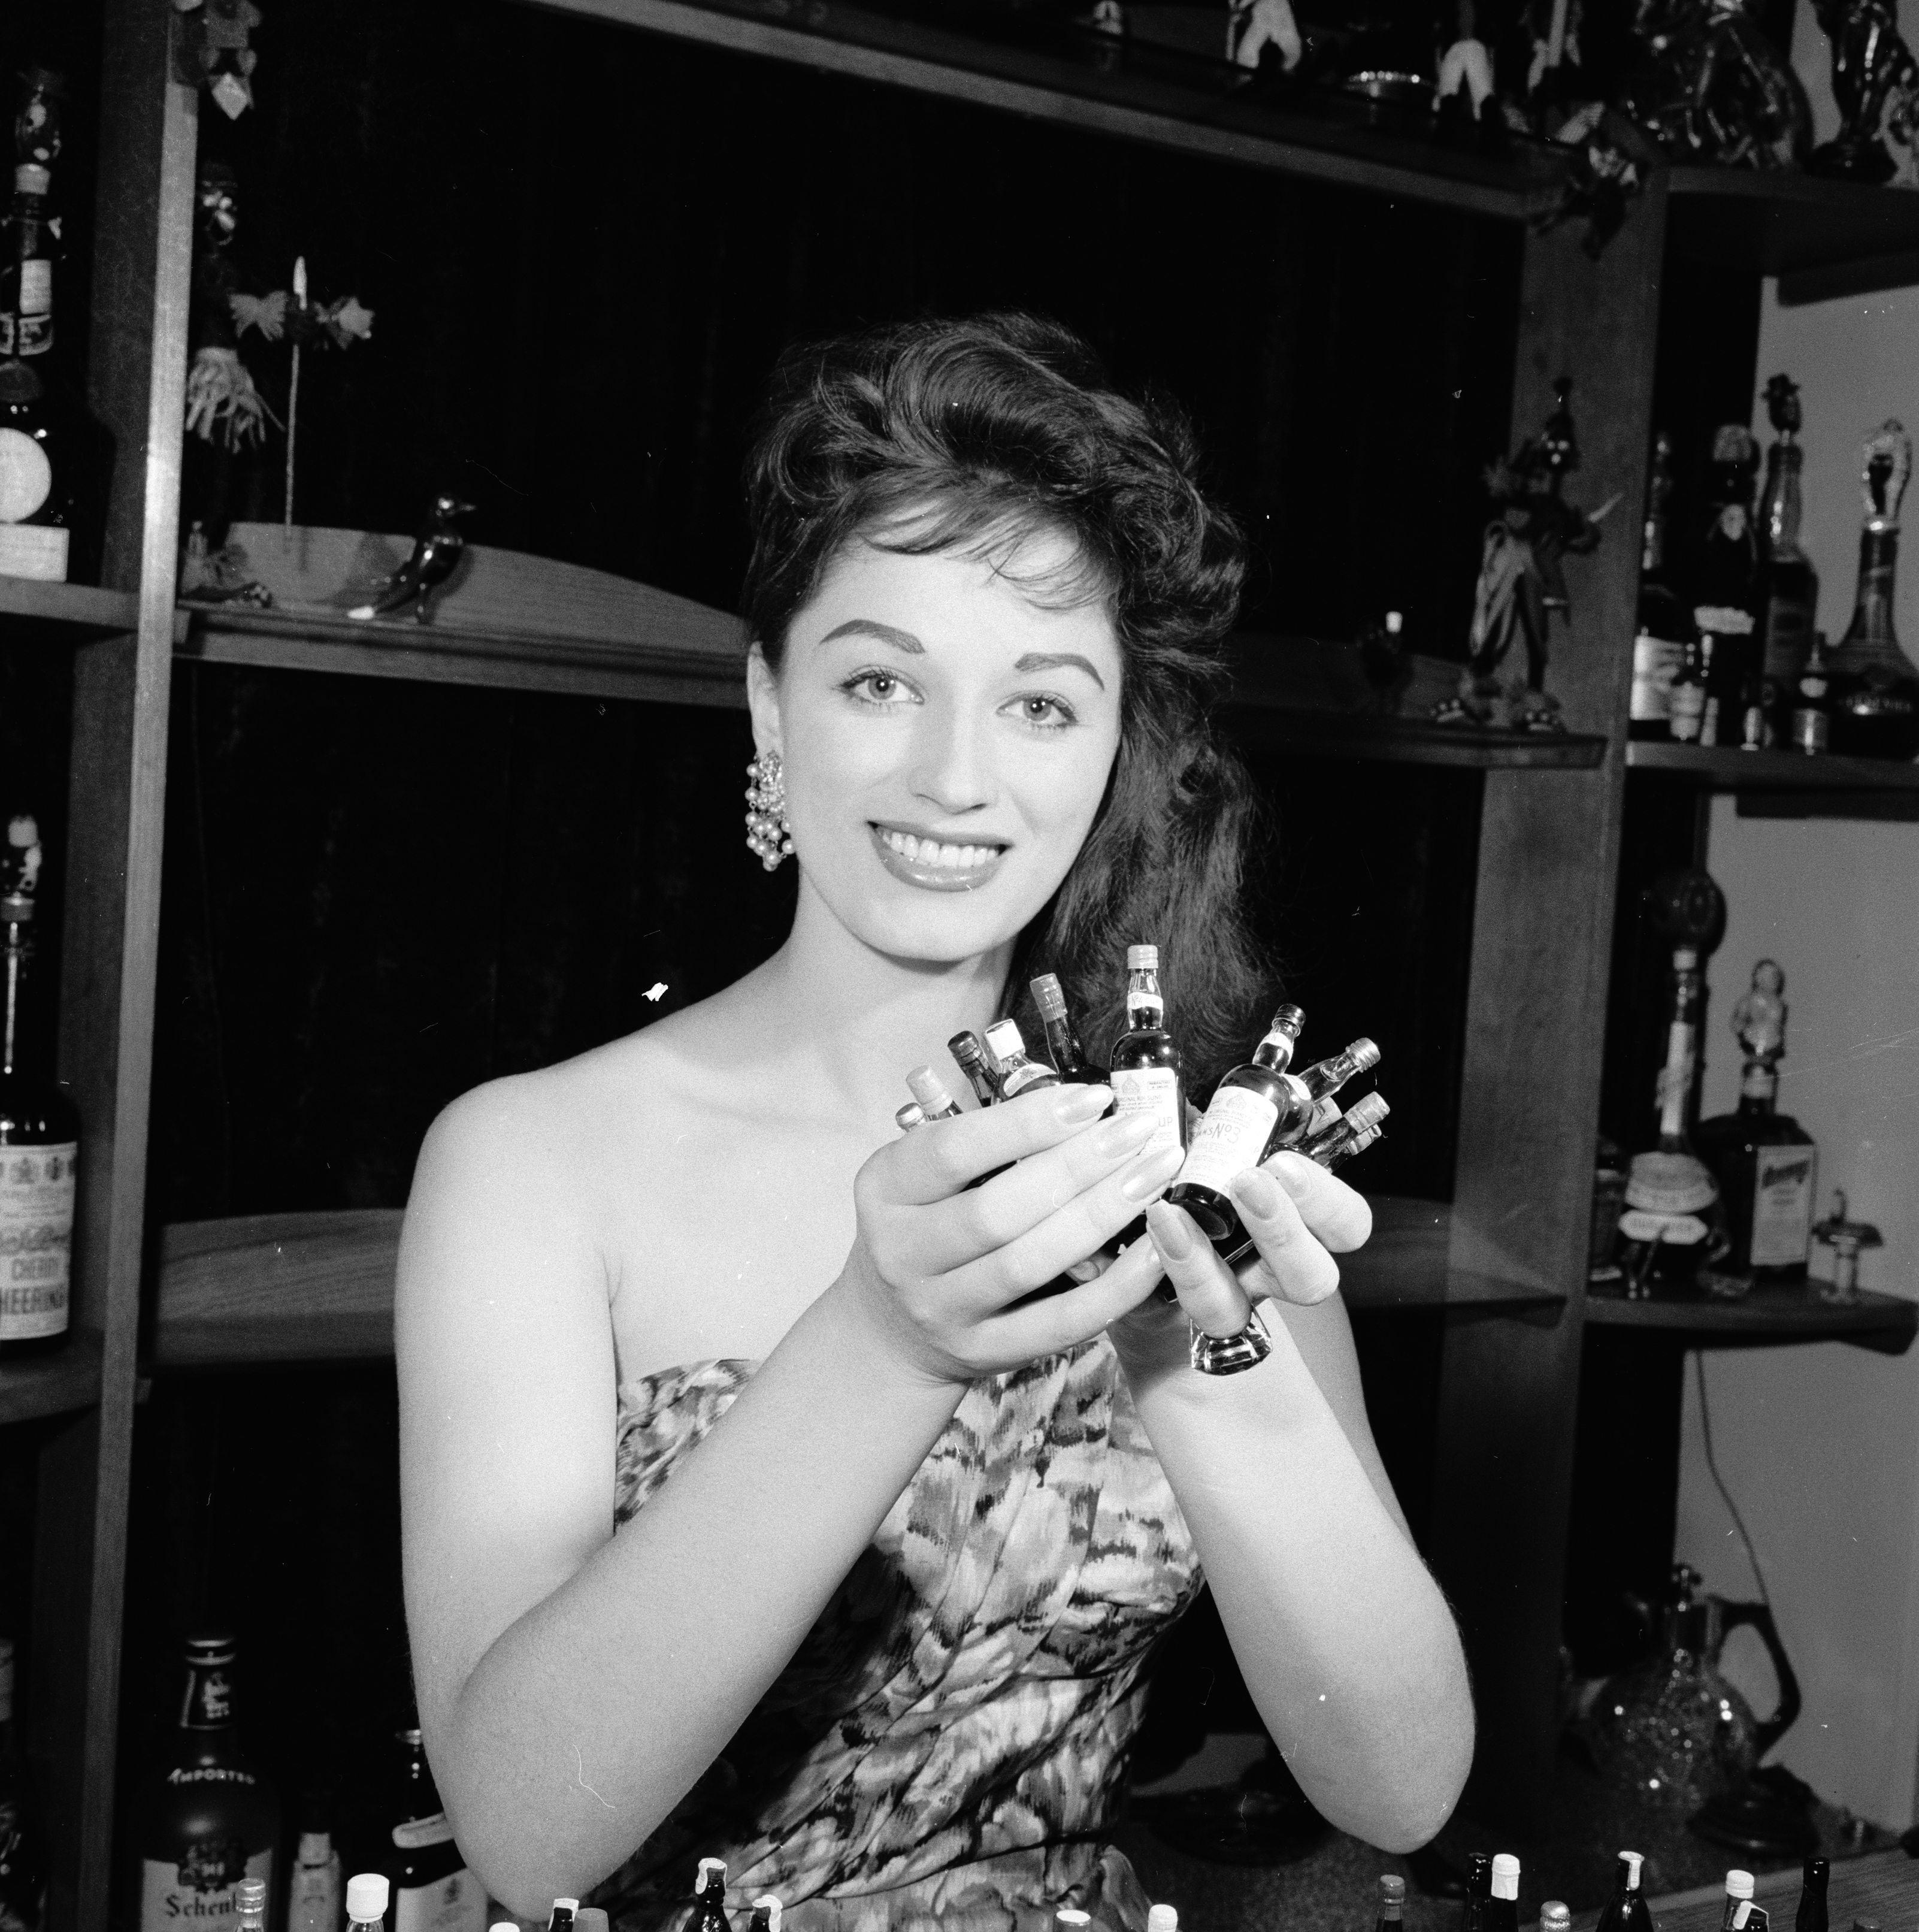 September 1958:  English actress and novelist Jackie Collins at the cocktail bar in her home in London proudly displaying her collection of miniature bottles.  (Photo by Frank Martin/BIPs/Getty Images)